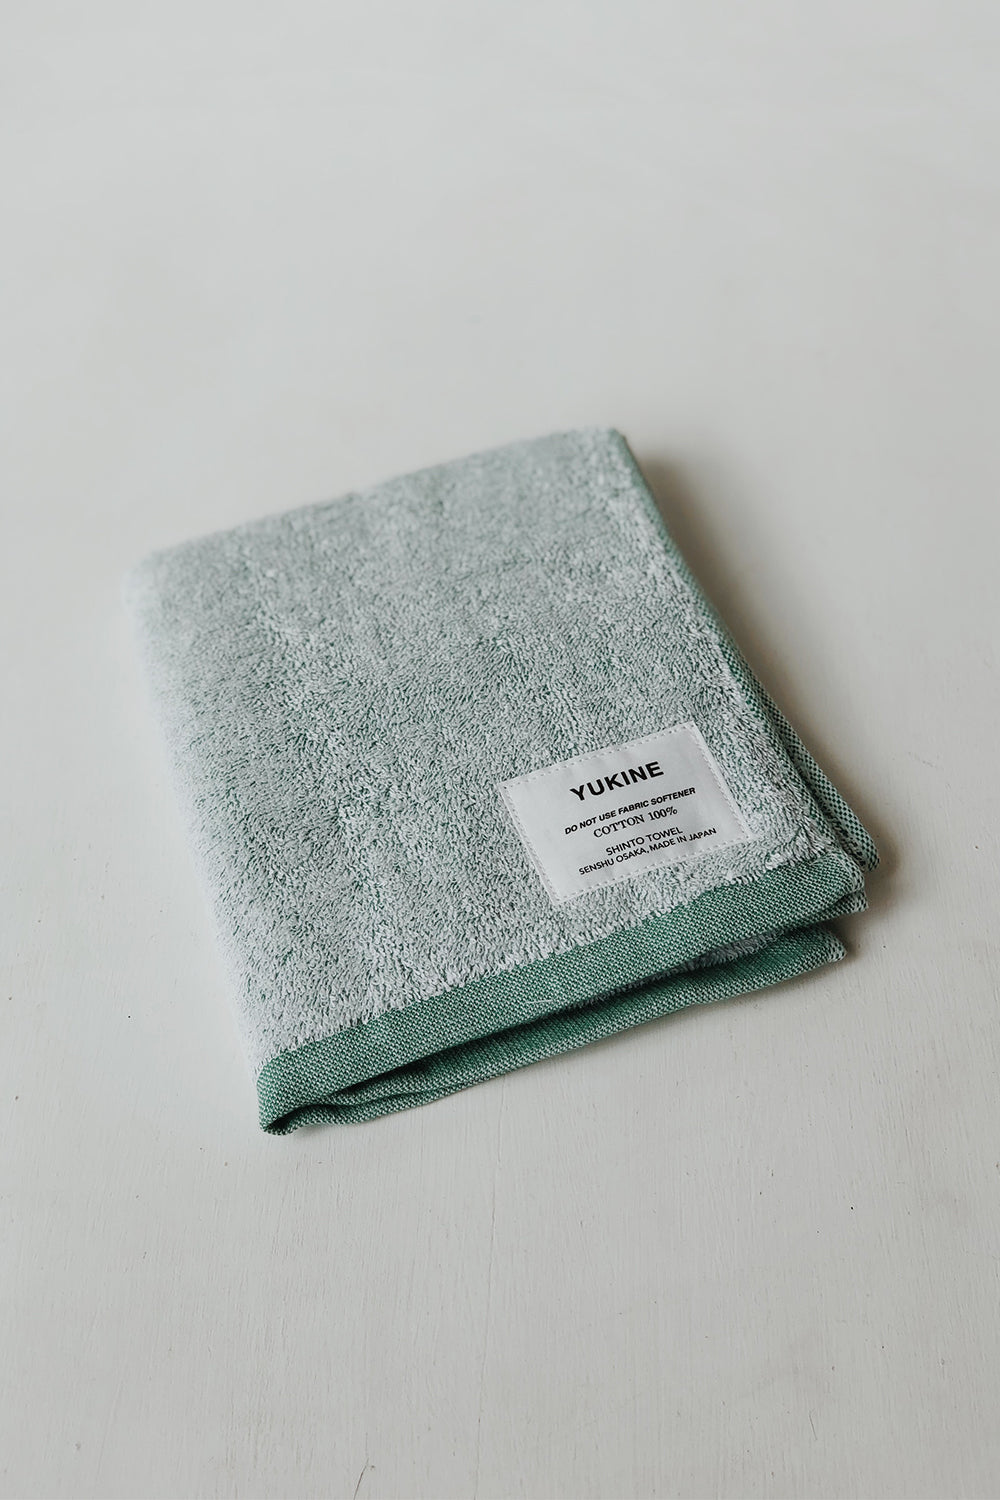 Shinto Yukine Face Towel - Mint